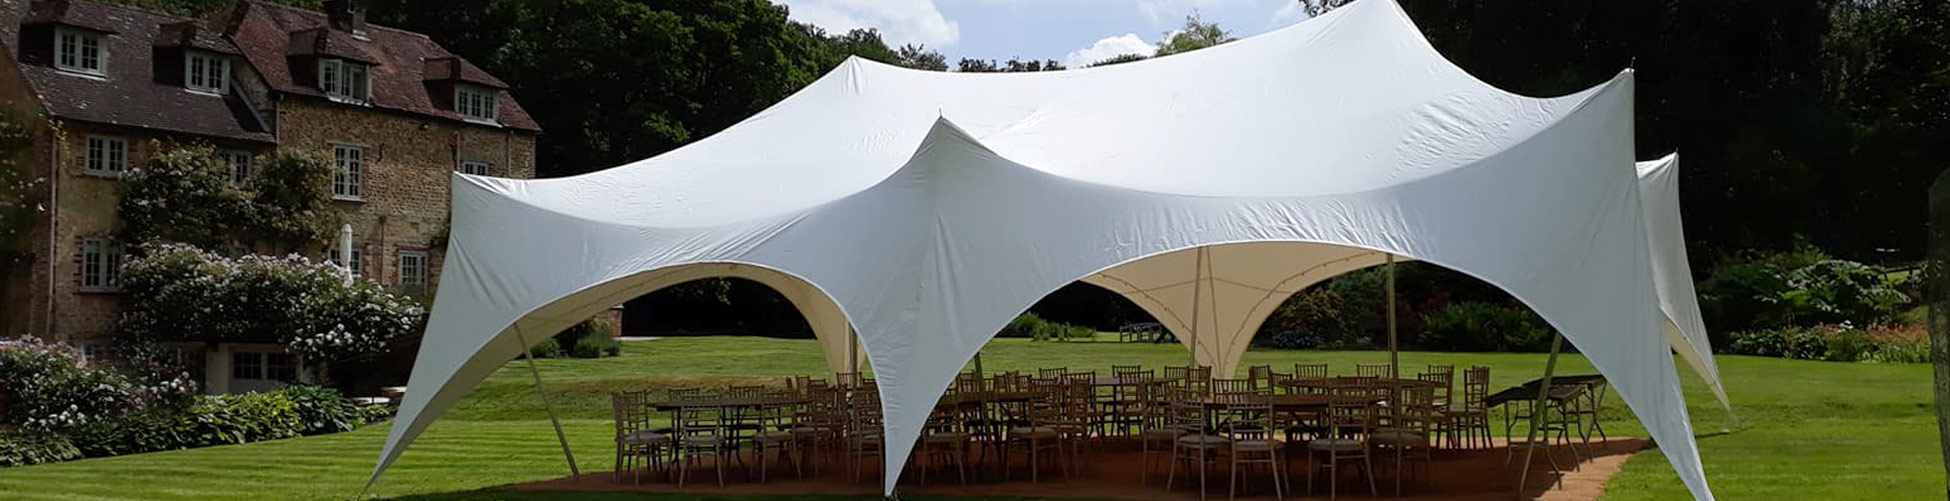 Capri marquee hire Hampshire